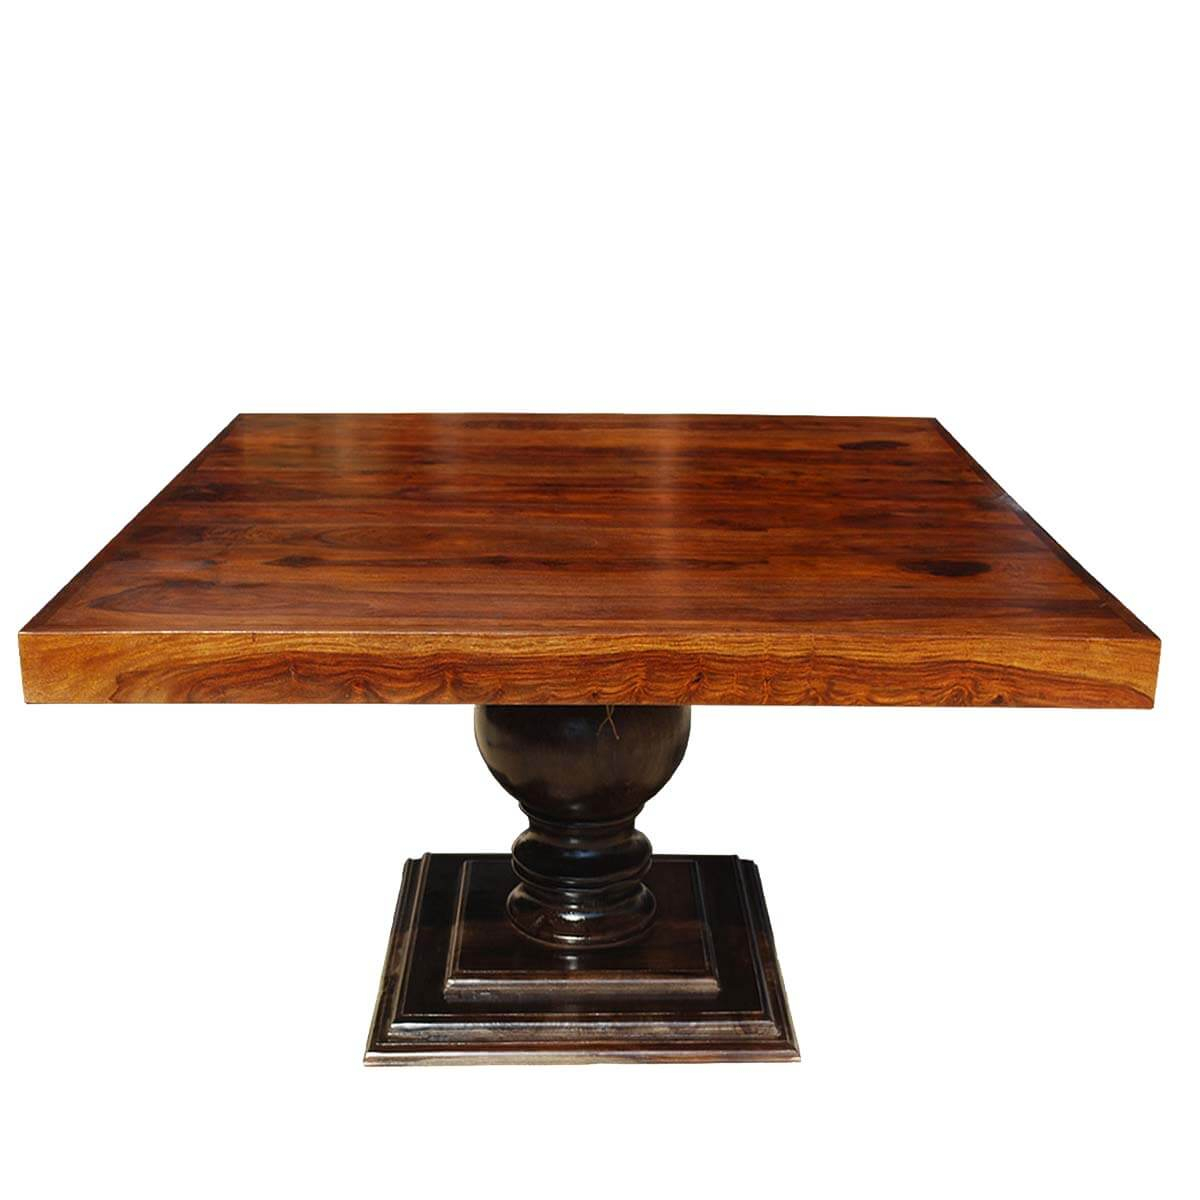 Minneapolis Rustic Solid Wood Fusion Pedestal Square In Current Sevinc Pedestal Dining Tables (View 6 of 15)